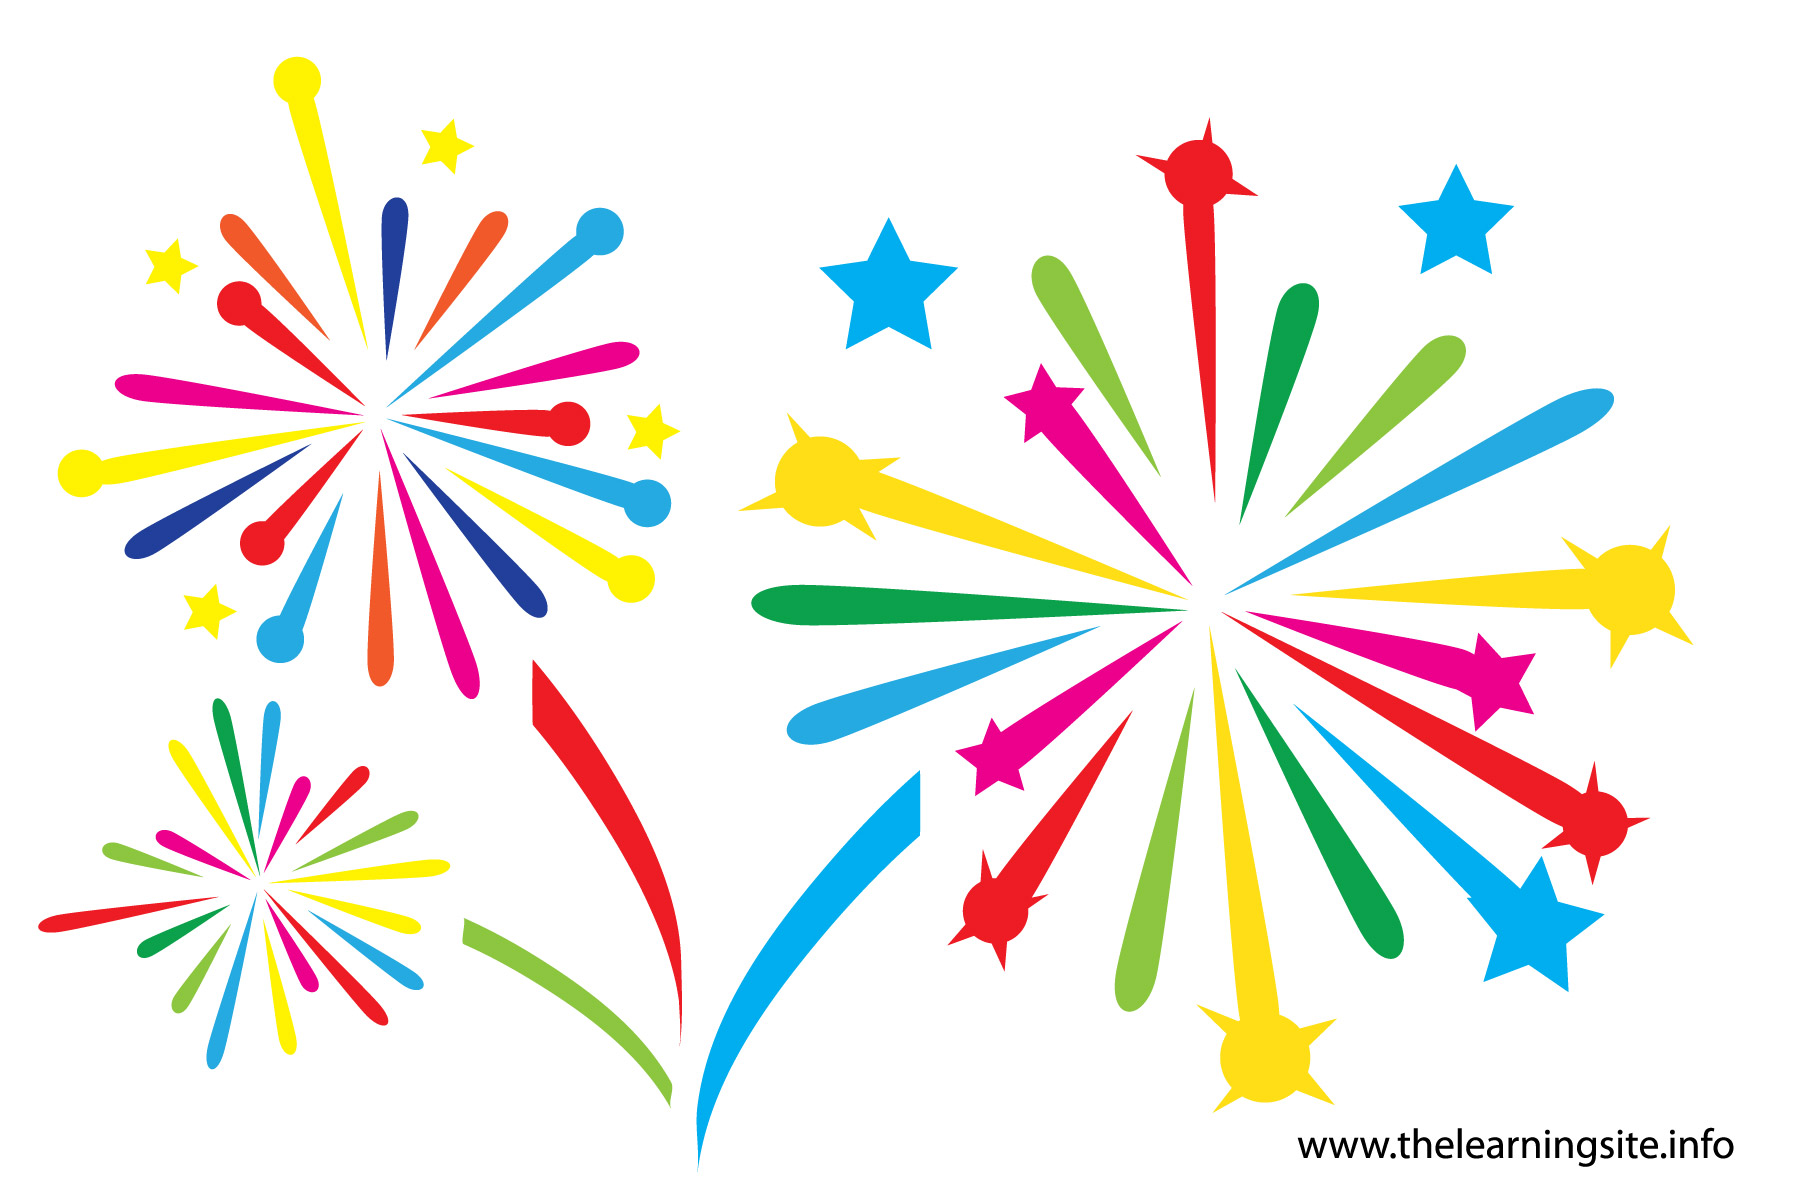 Clip art fireworks clipartfox - Fireworks Pictures Free Clipart